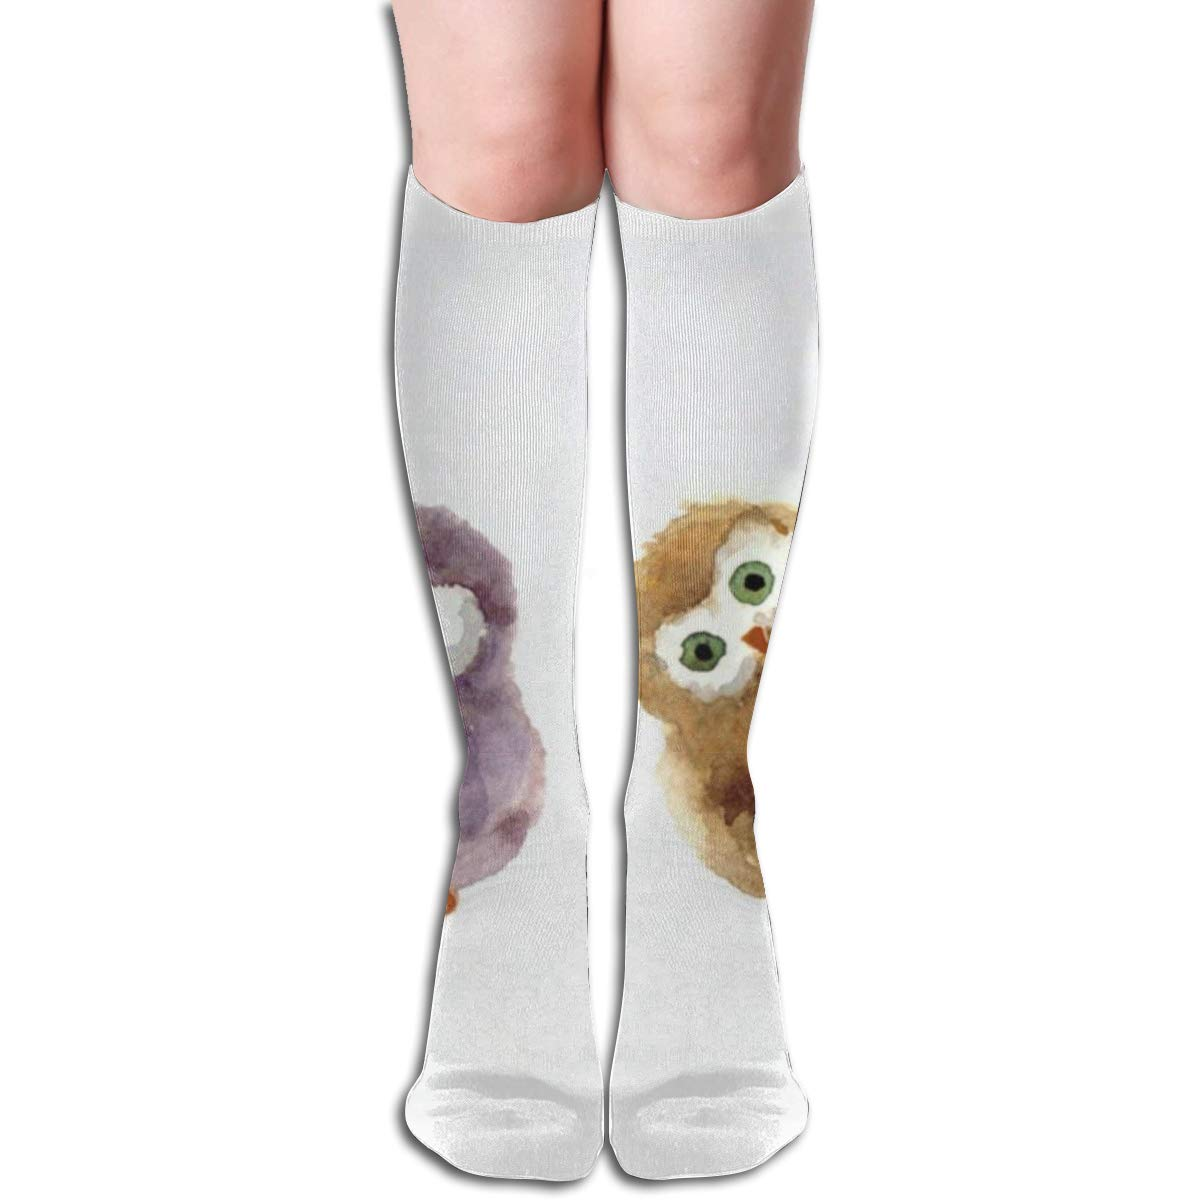 Stretch Stocking Cute Watercolor Owl Soccer Socks Over The Calf Hot For Running,Athletic,Travel